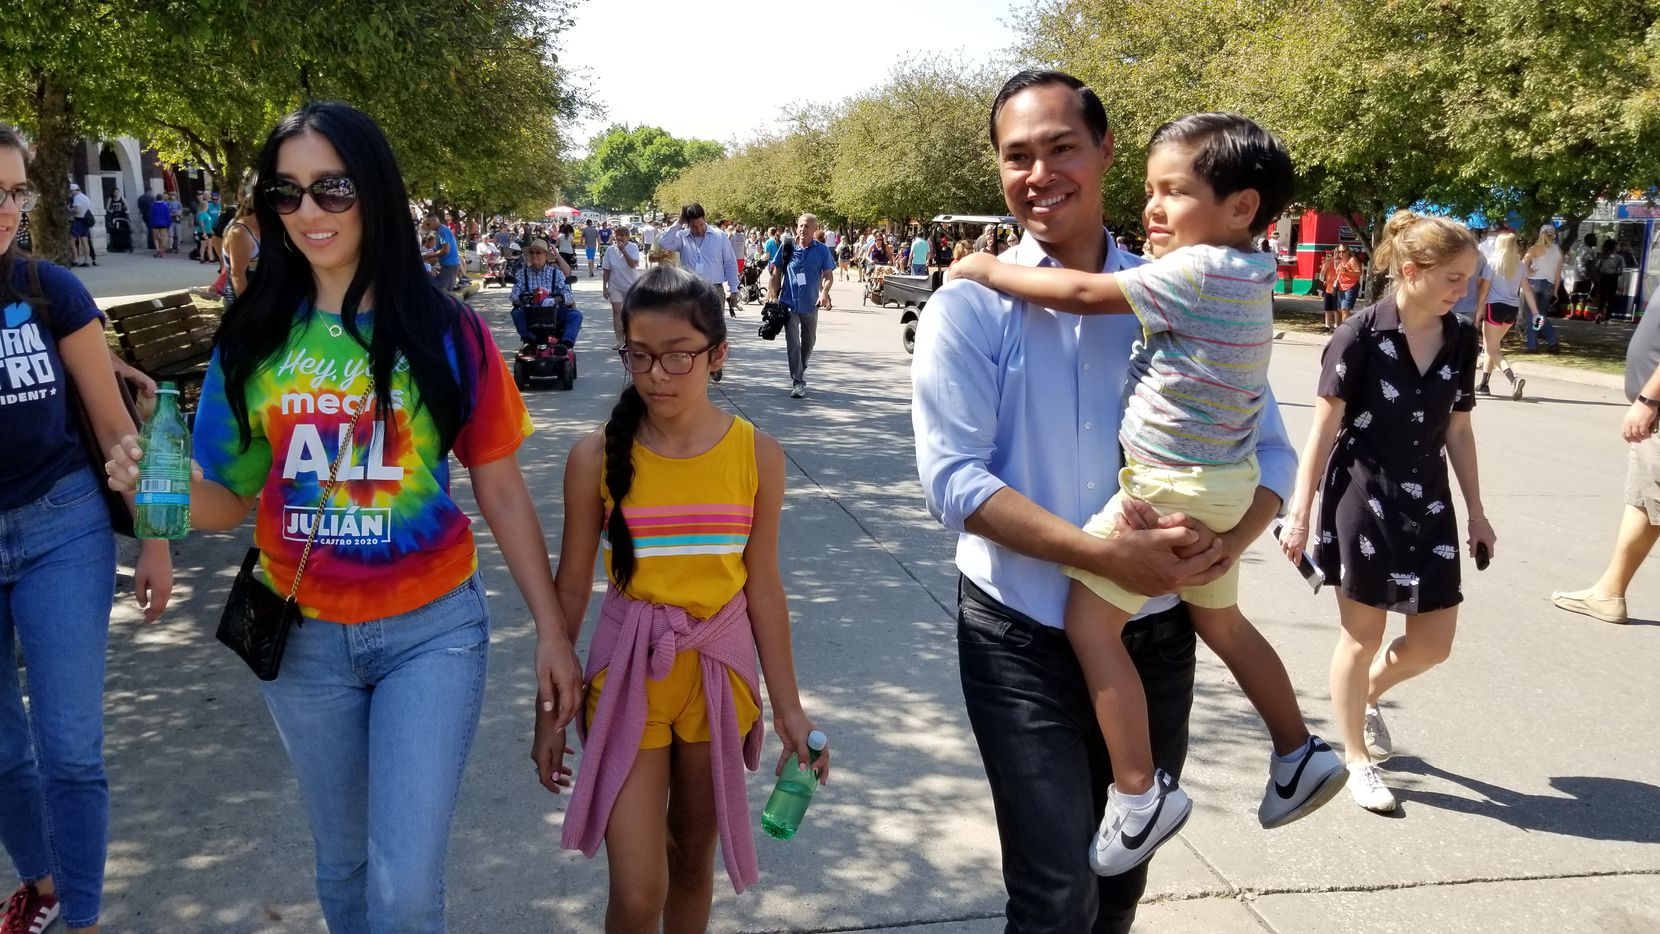 The Castro family at the Iowa State Fair on Aug. 9, 2019: Erica and Julián Castro, their daughter Carina, 10, and son Cristián, 4.